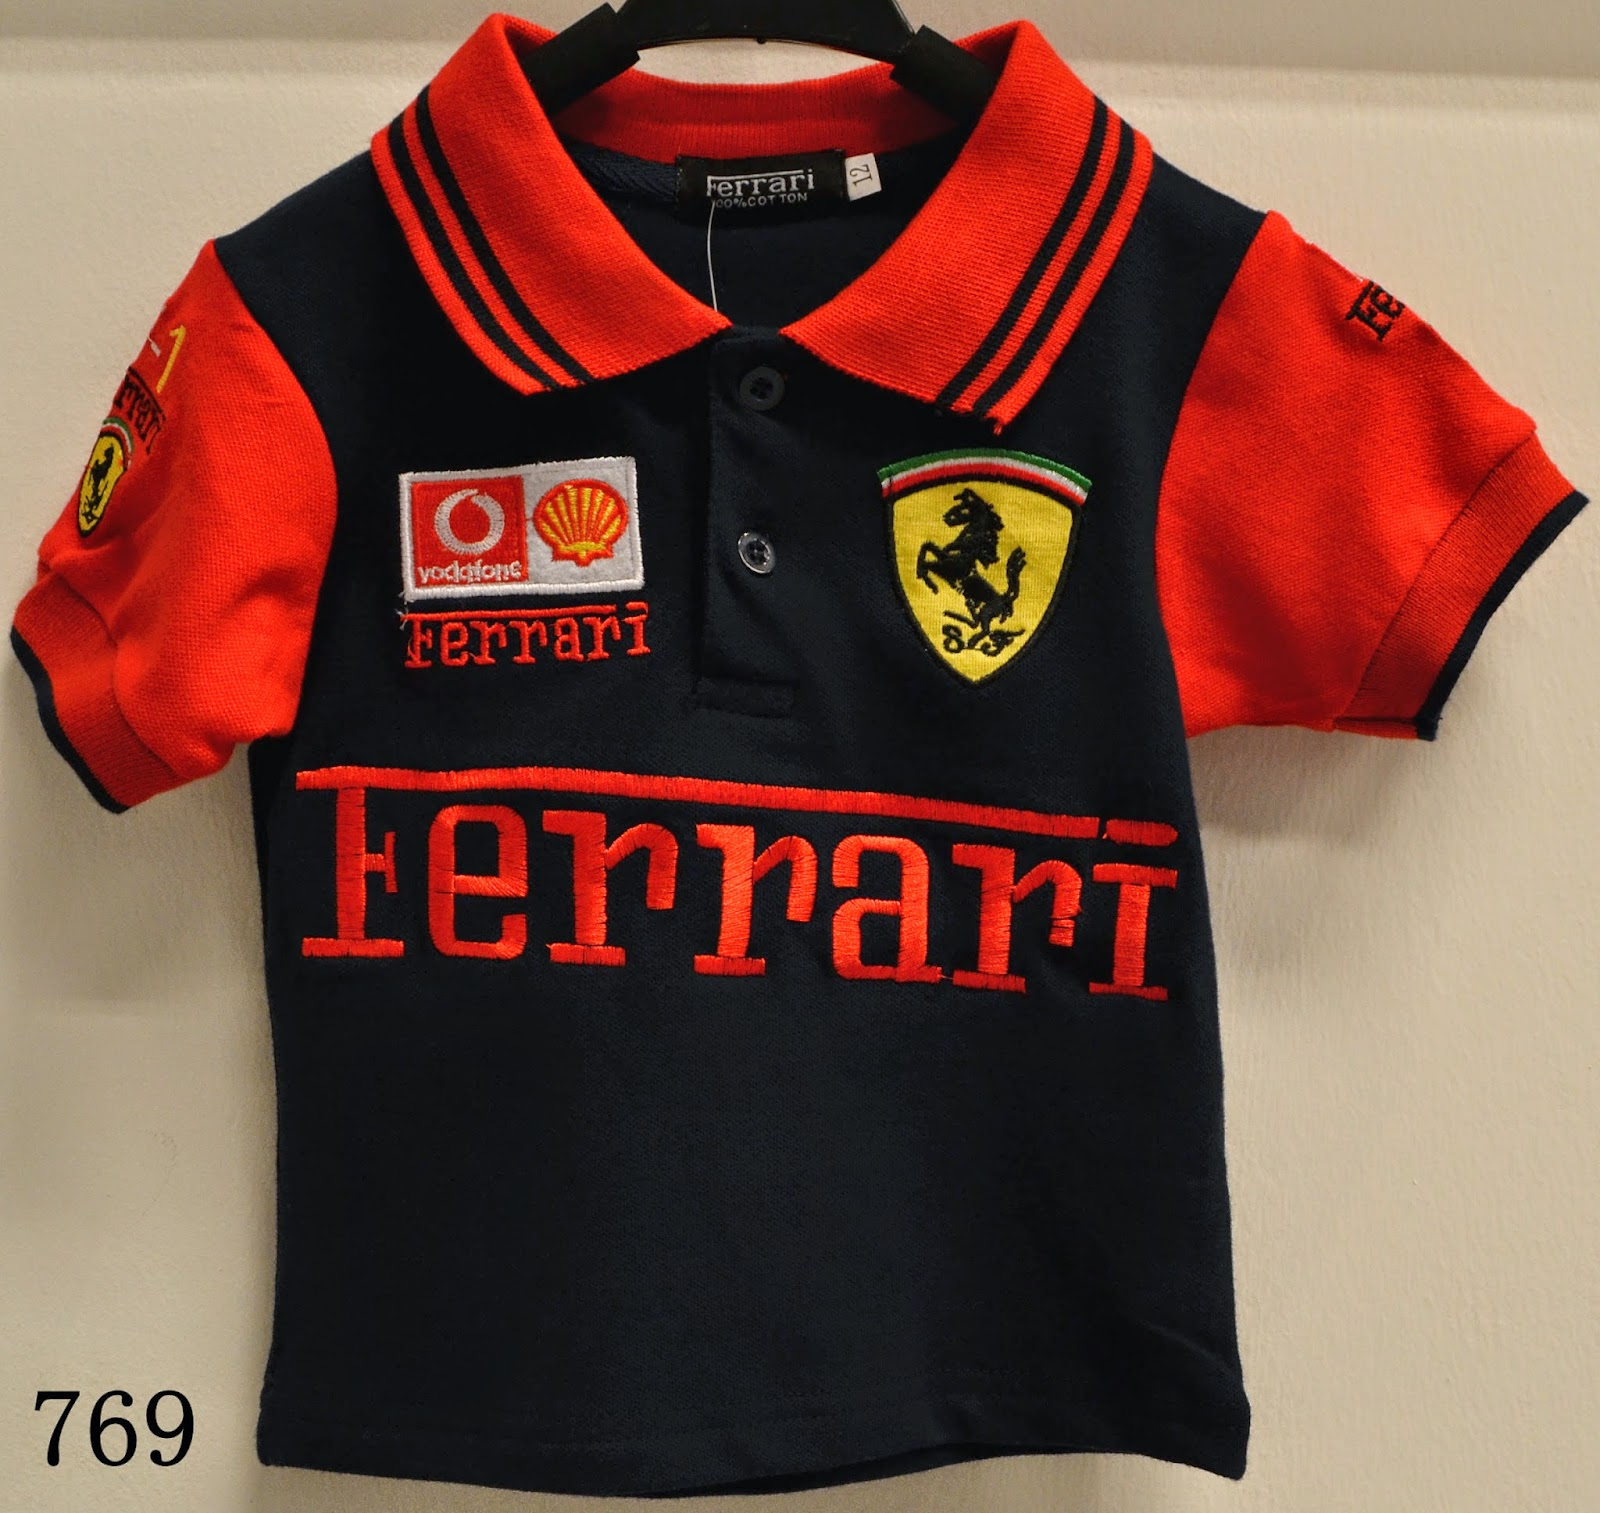 products kids ferrari online hong discount clothes up retykle kong off at m baby coat shopping to